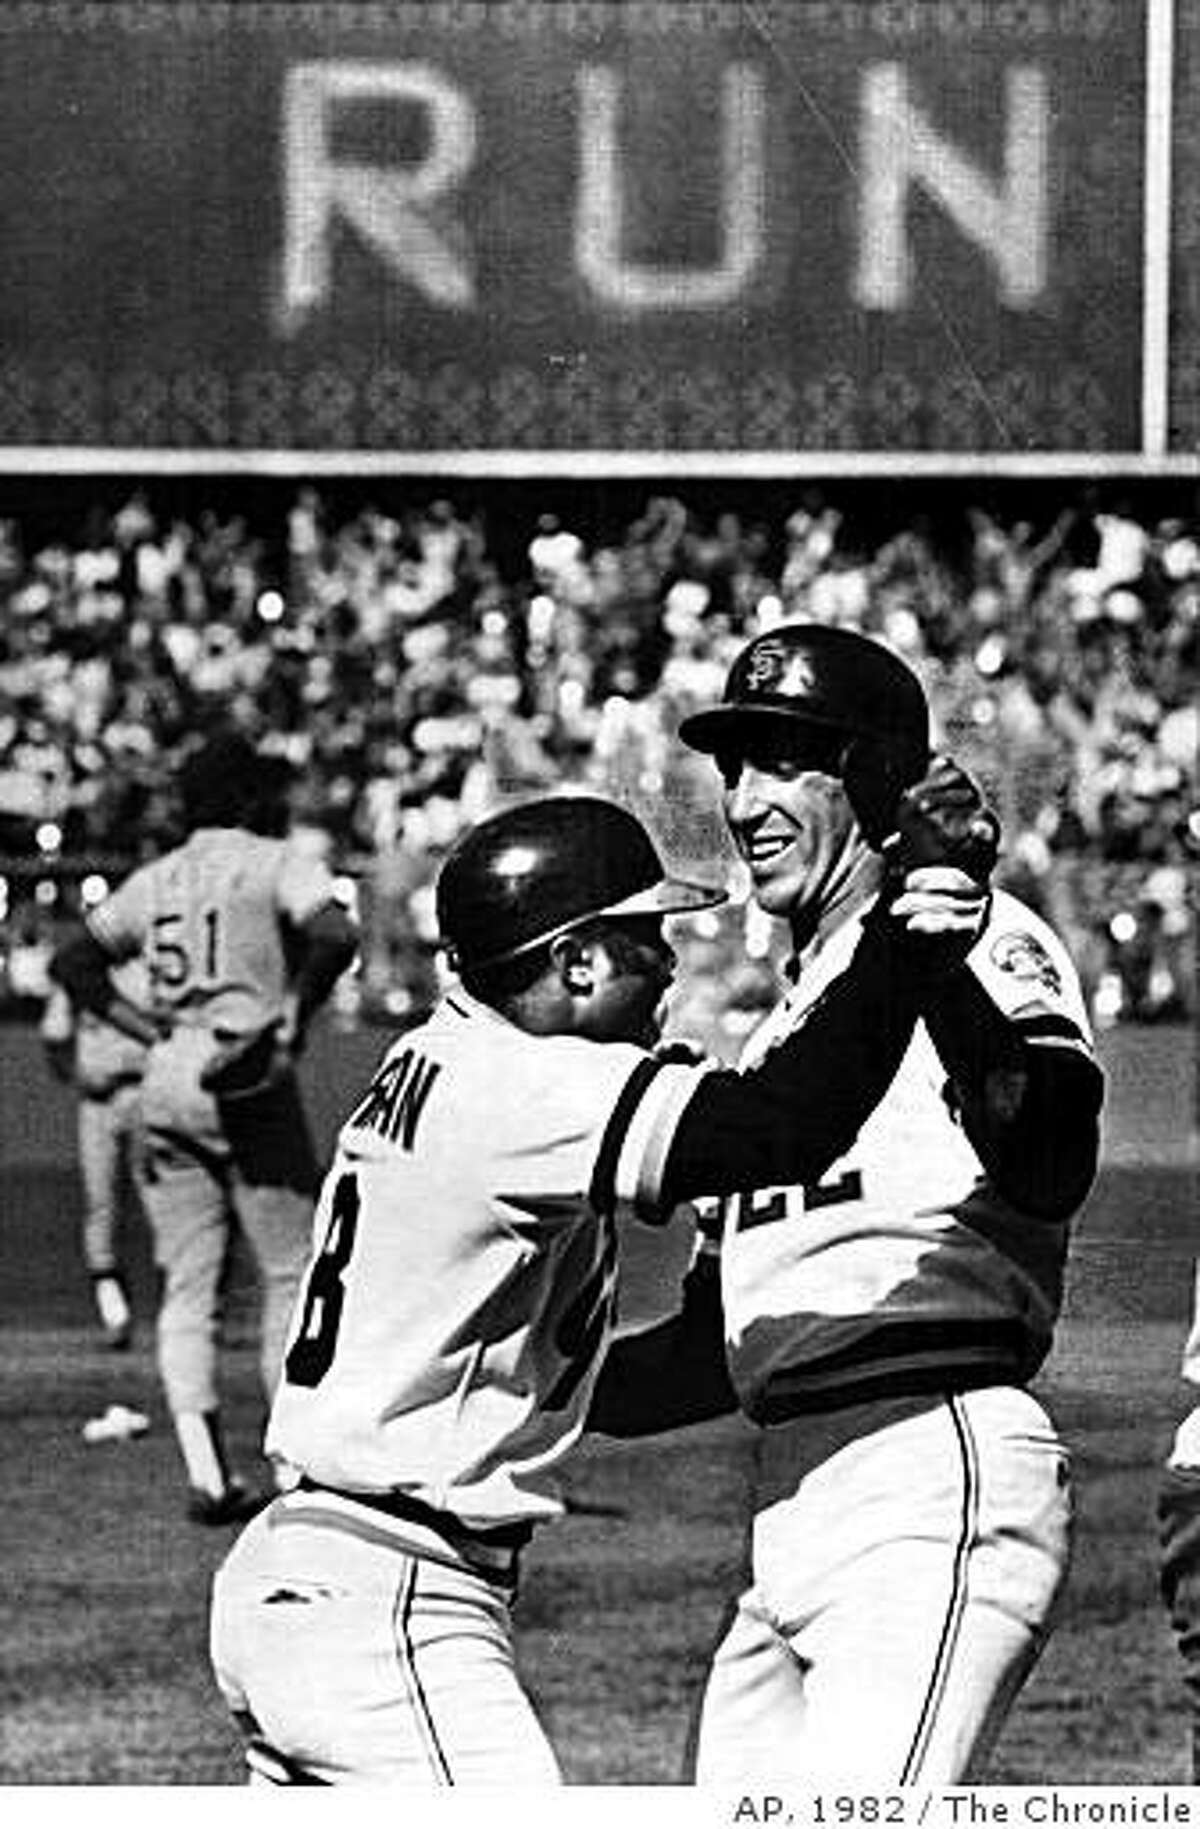 Giants' Joe Morgan (left) celebrates with Jack Clark after hitting a three-run homer that helped eliminate L.A. in 1982.